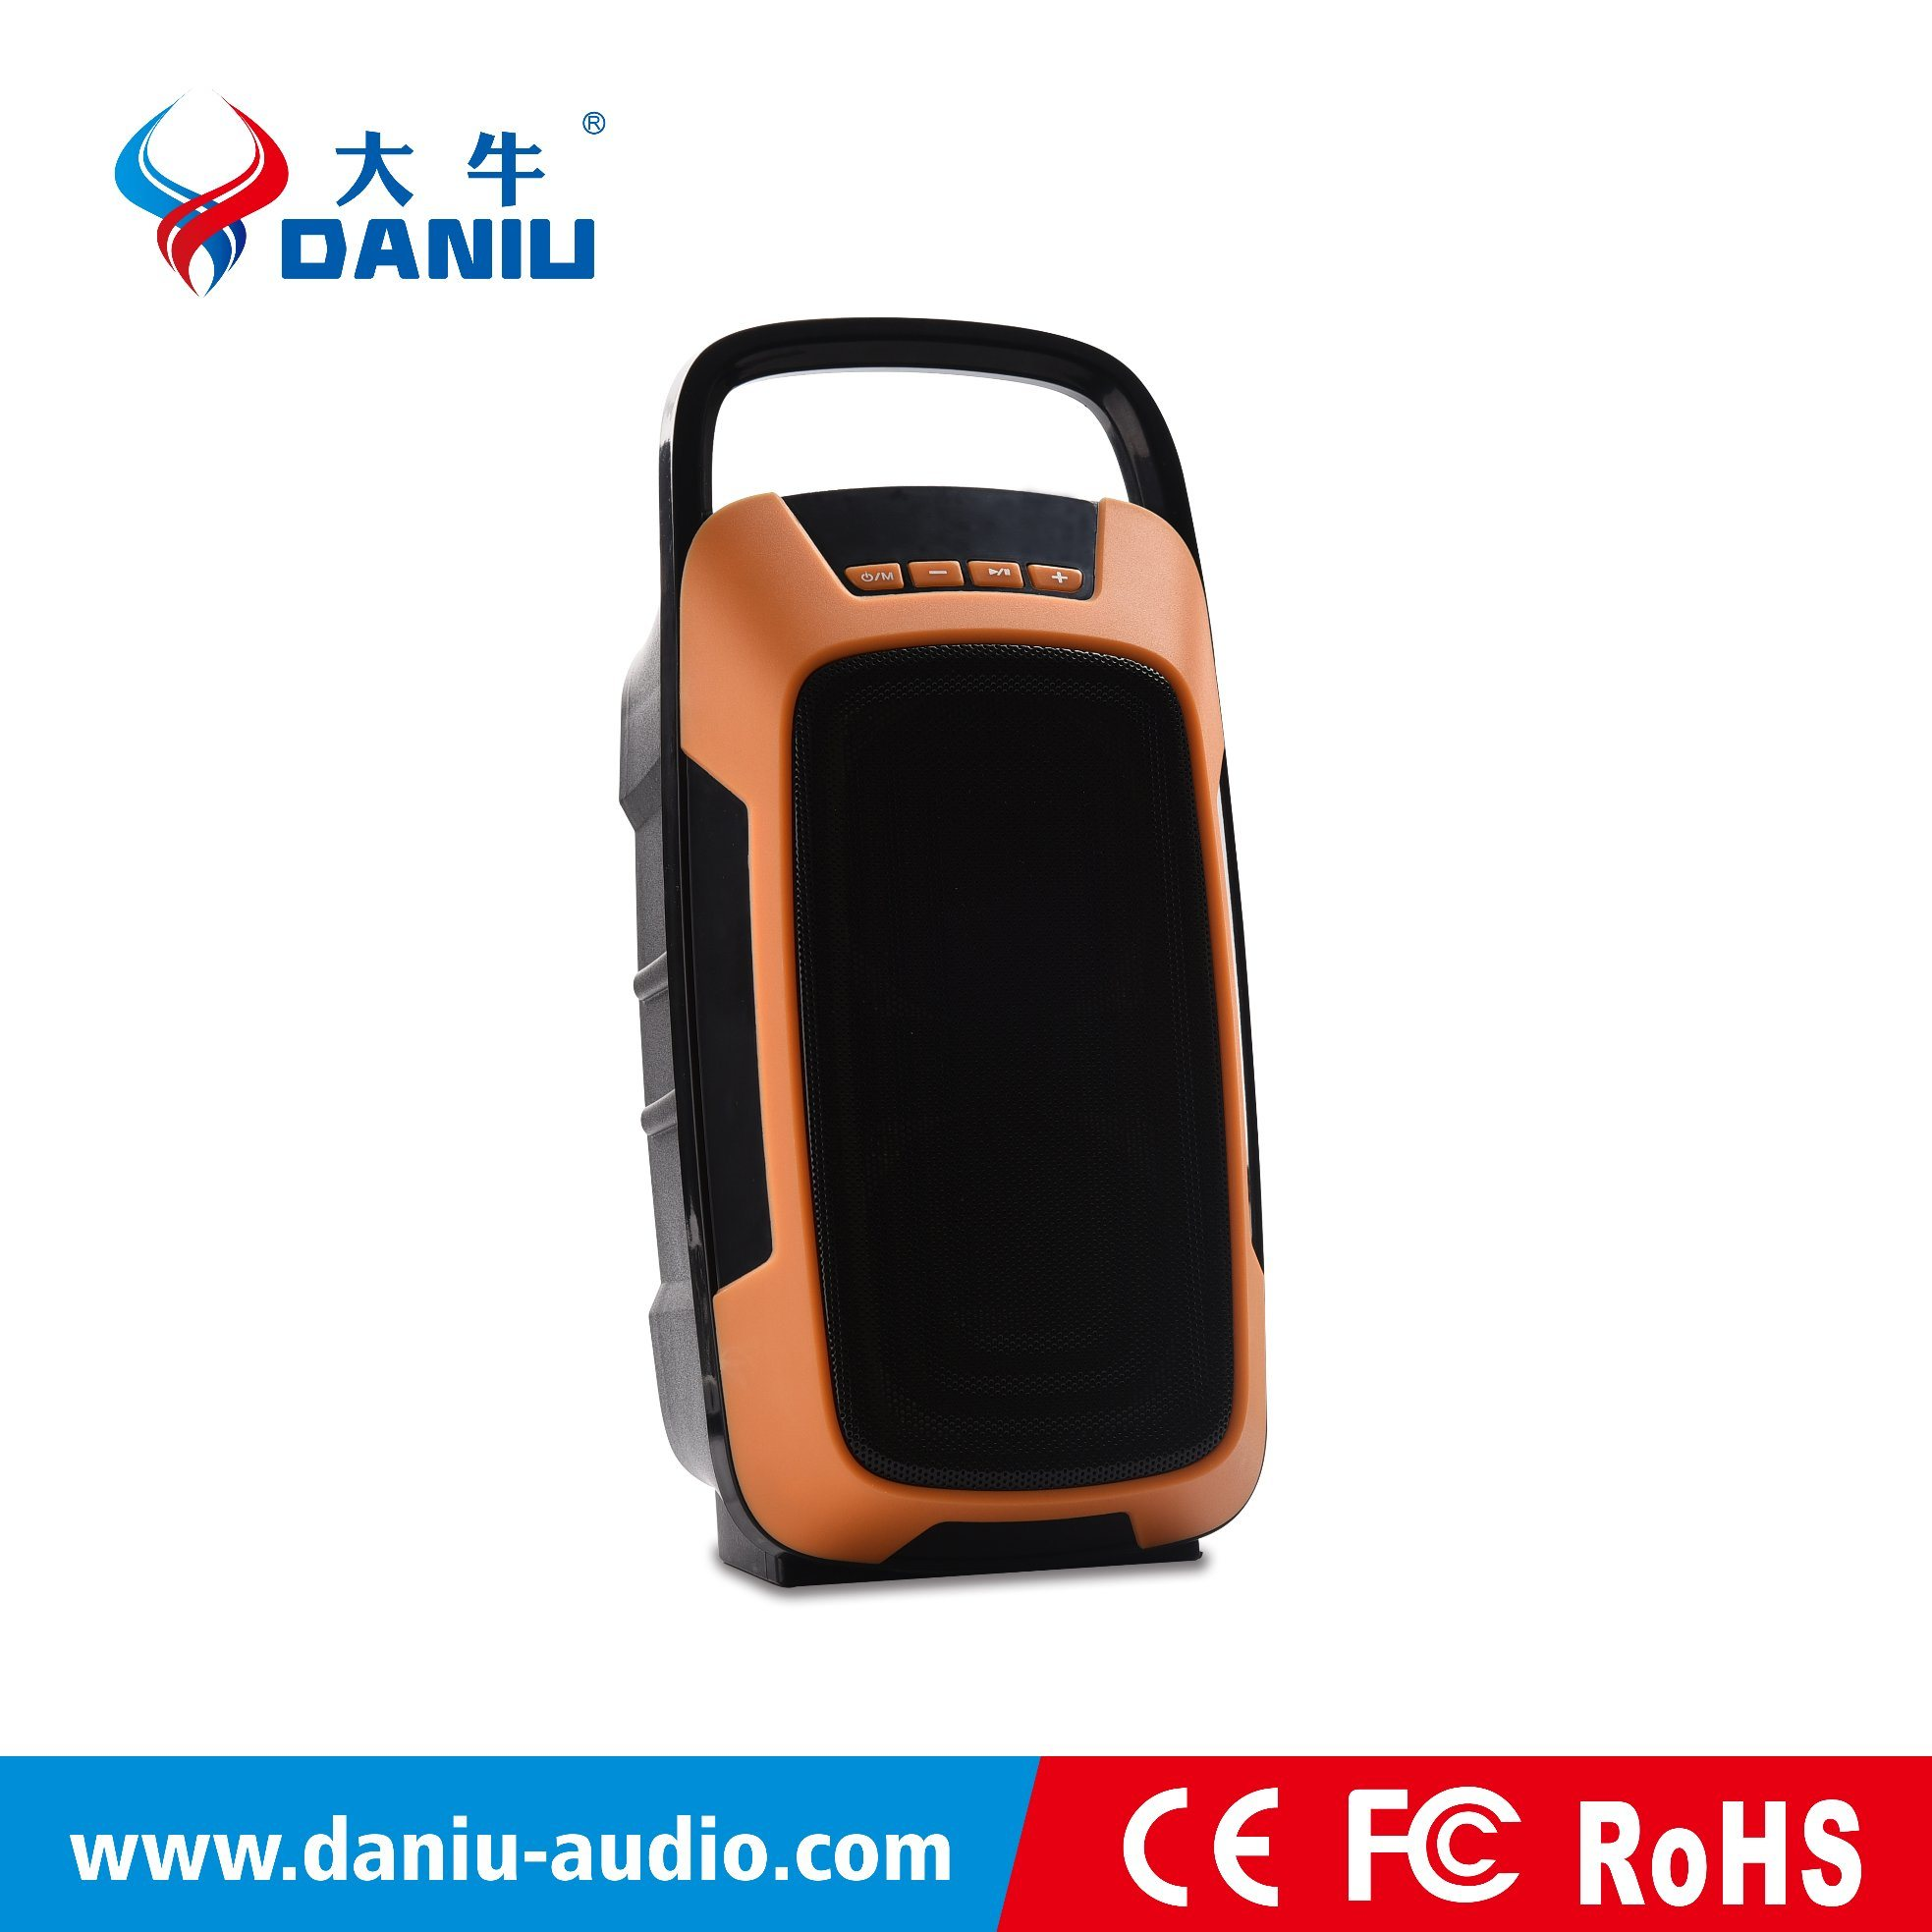 Best Seller Bluetooth Speaker with Power Bank and Strong Bass